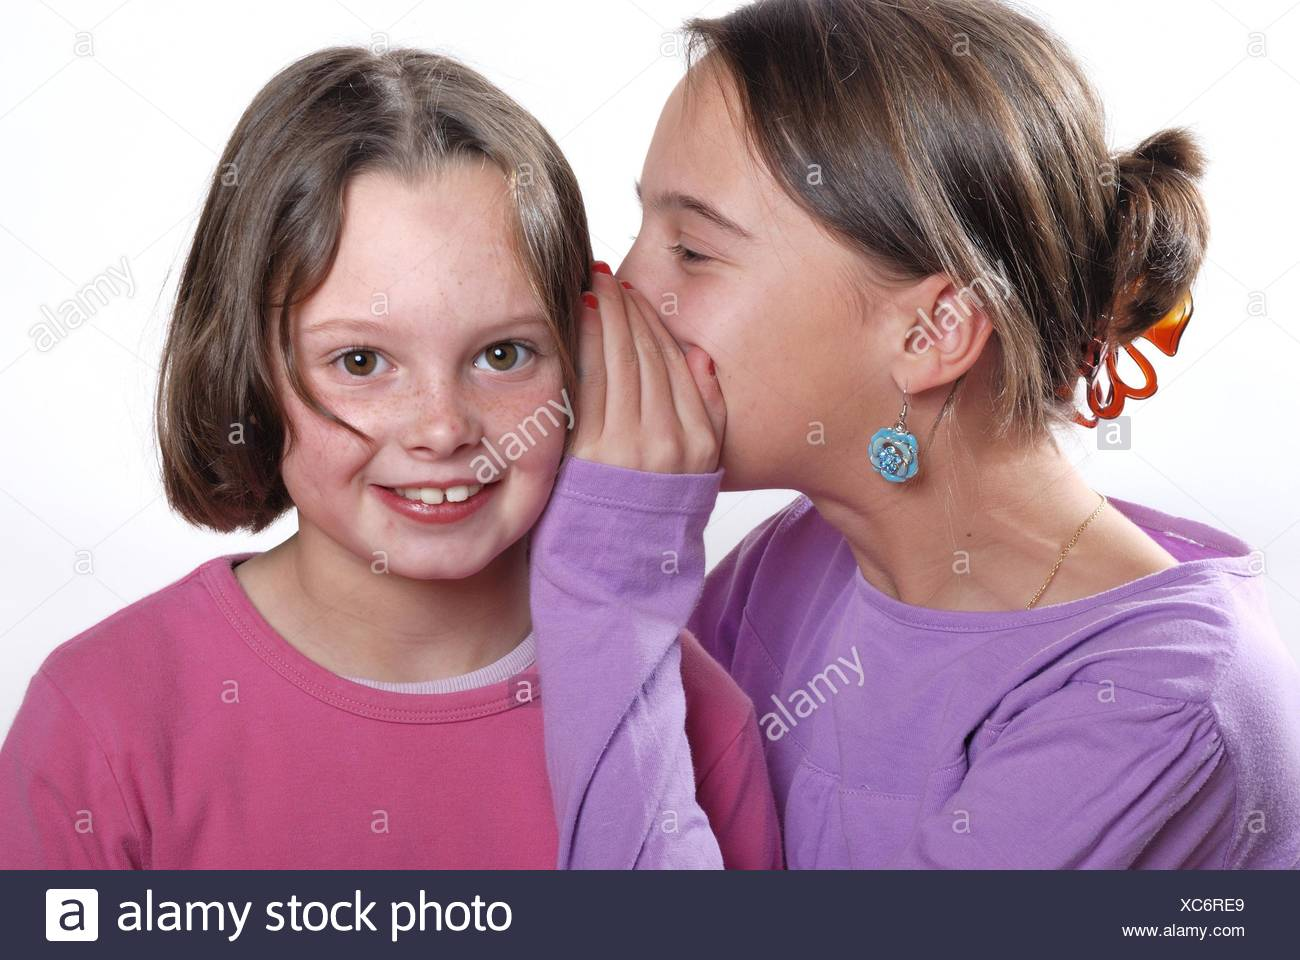 complicity between sisters. - Stock Image